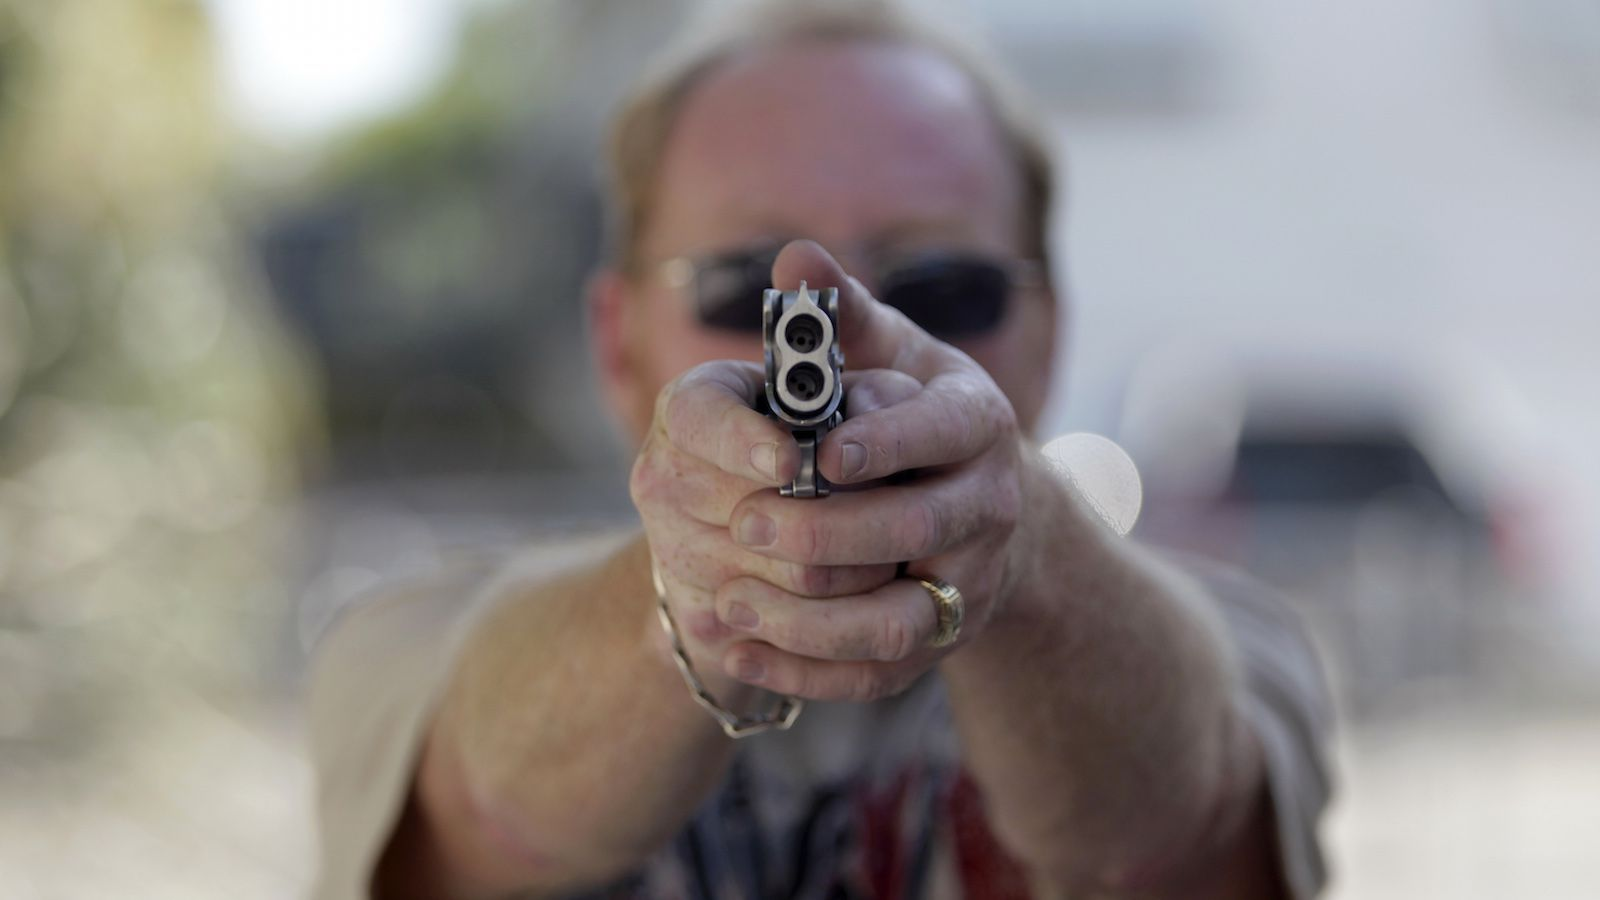 Doug Varrieur practices his firing stance on the firing range with an unloaded weapon in the yard of his home in Big Pine Keys in the Florida Keys March 5, 2014. Varrieur, 57, discovered a little-noticed part of Florida law which prohibits local governments from restricting gun rights in any way, and in December he set up a personal gun range on his property in a residential subdivision. Neighbors were outraged by the live gunfire, but their surprise was nothing compared to that of municipal leaders, who were shocked to realize there was nothing they could do about it. Picture taken March 5, 2014. REUTERS/Andrew Innerarity (UNITED STATES - Tags: SOCIETY) - RTR3G4NC